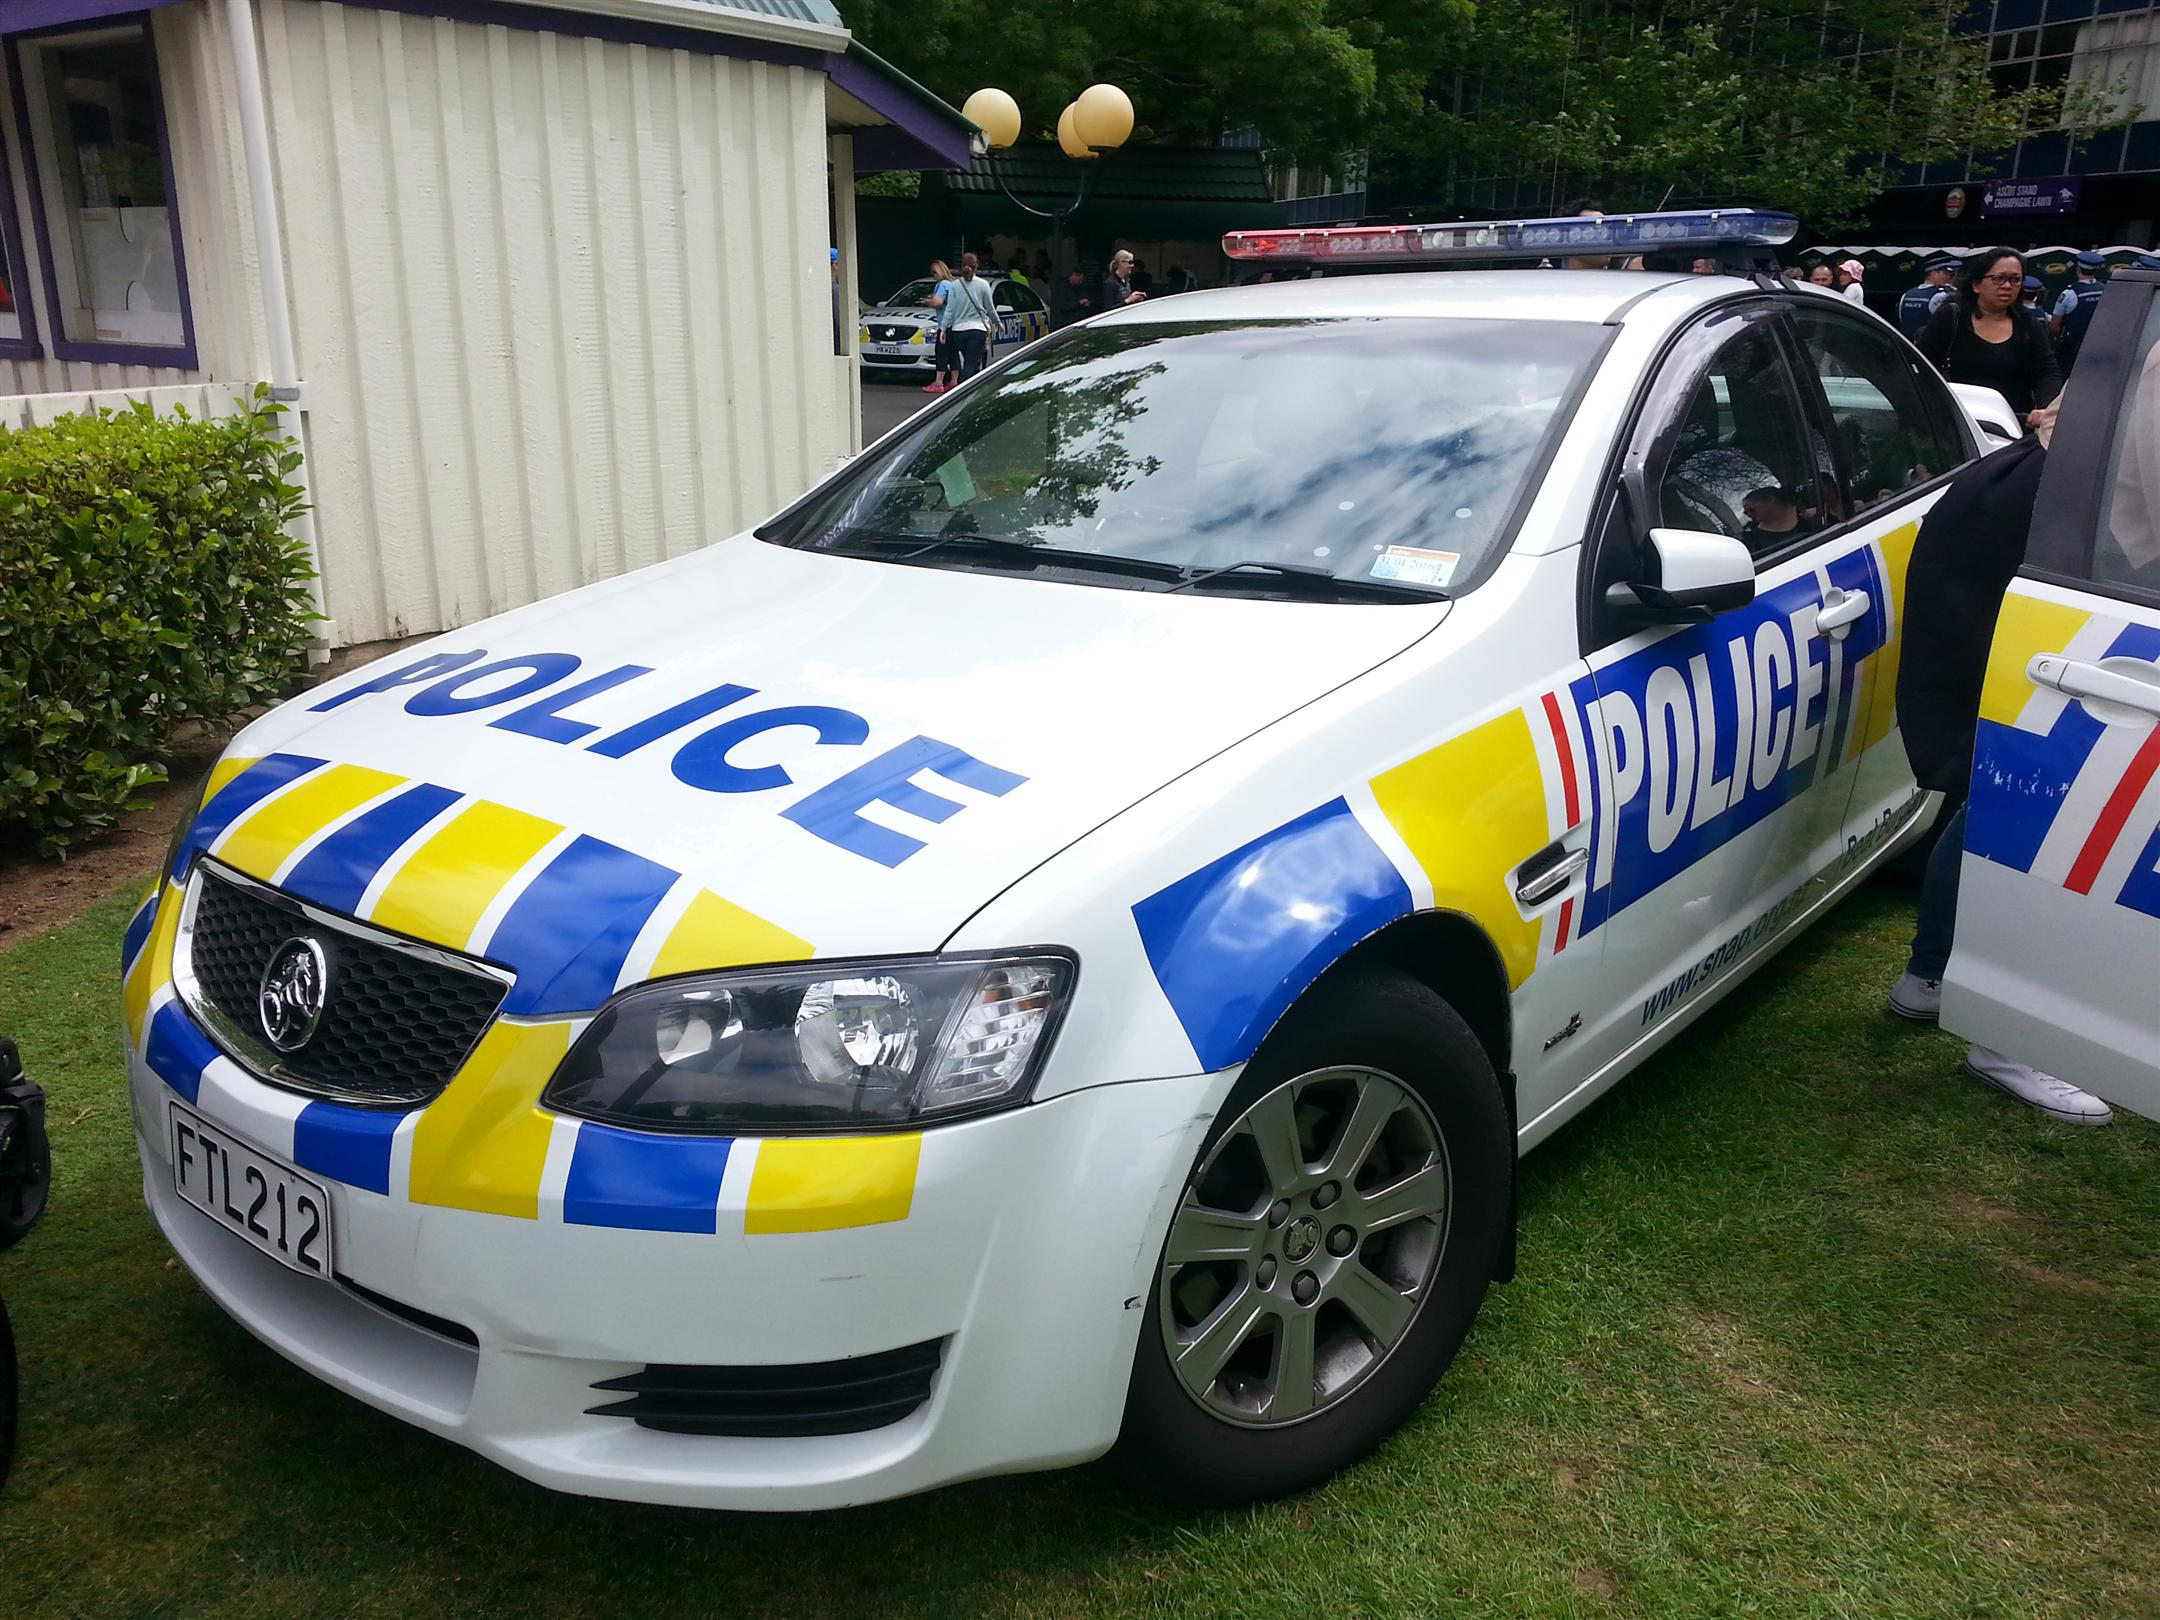 Nz Shooting Wikipedia: New Zealand Police